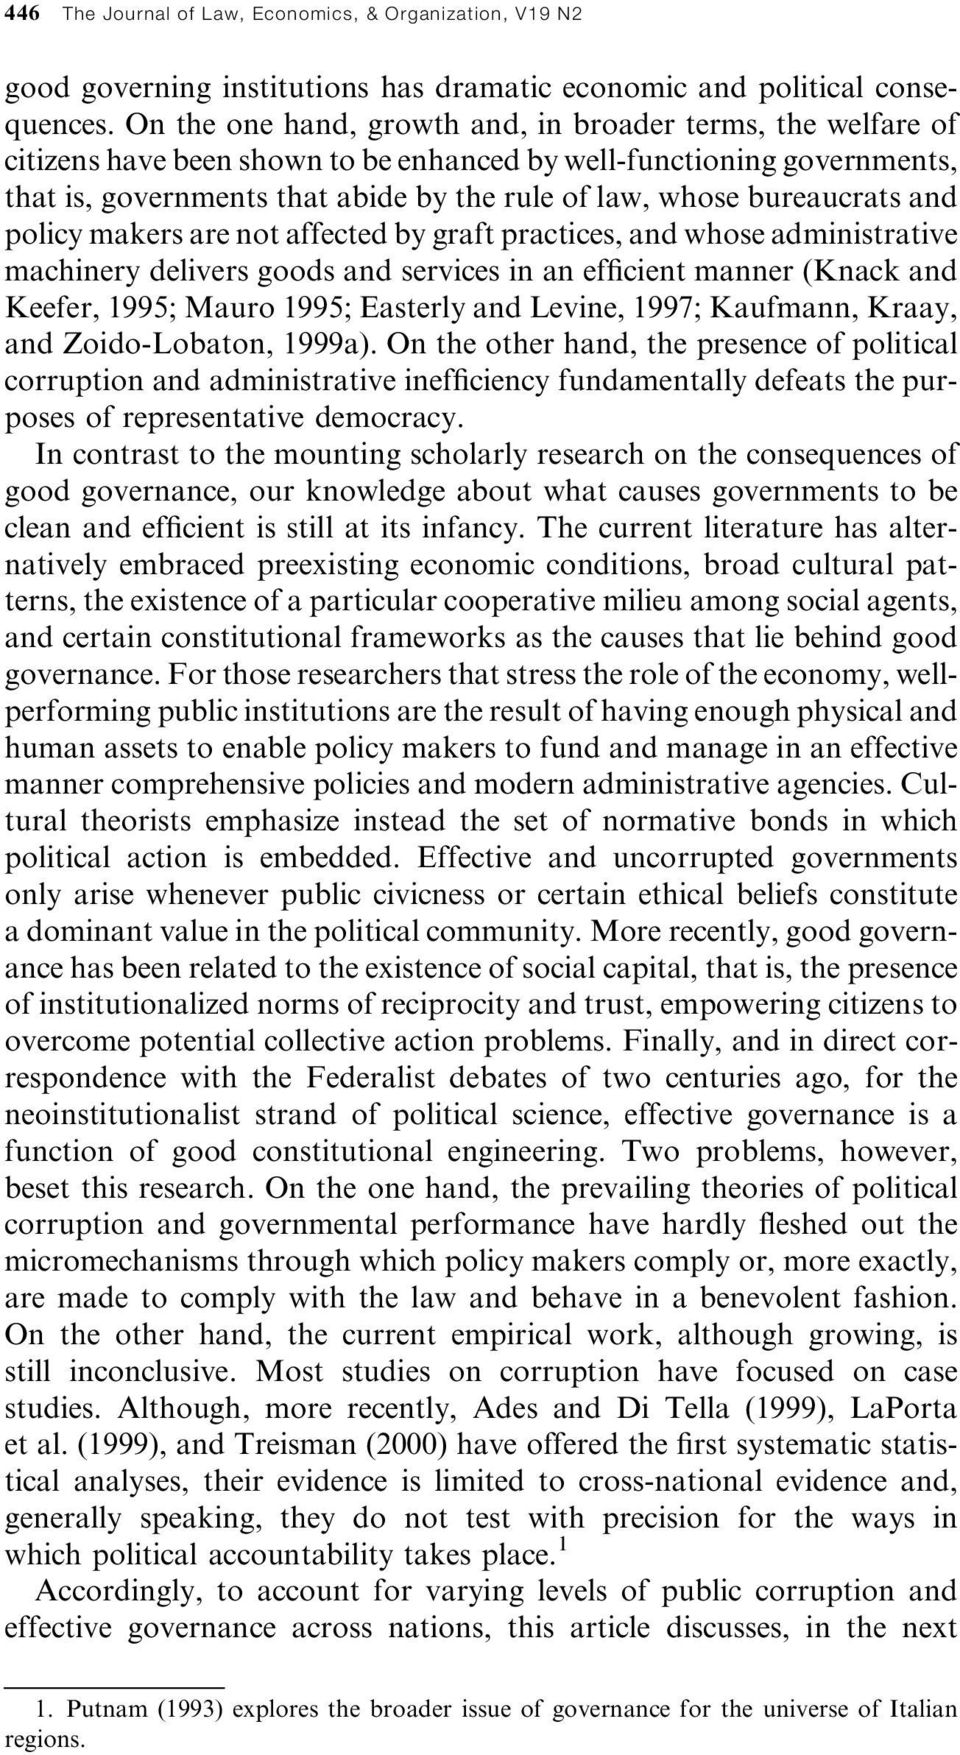 bureaucrats and policy makers are not affected by graft practices, and whose administrative machinery delivers goods and services in an ef cient manner (Knack and Keefer, 1995; Mauro 1995; Easterly